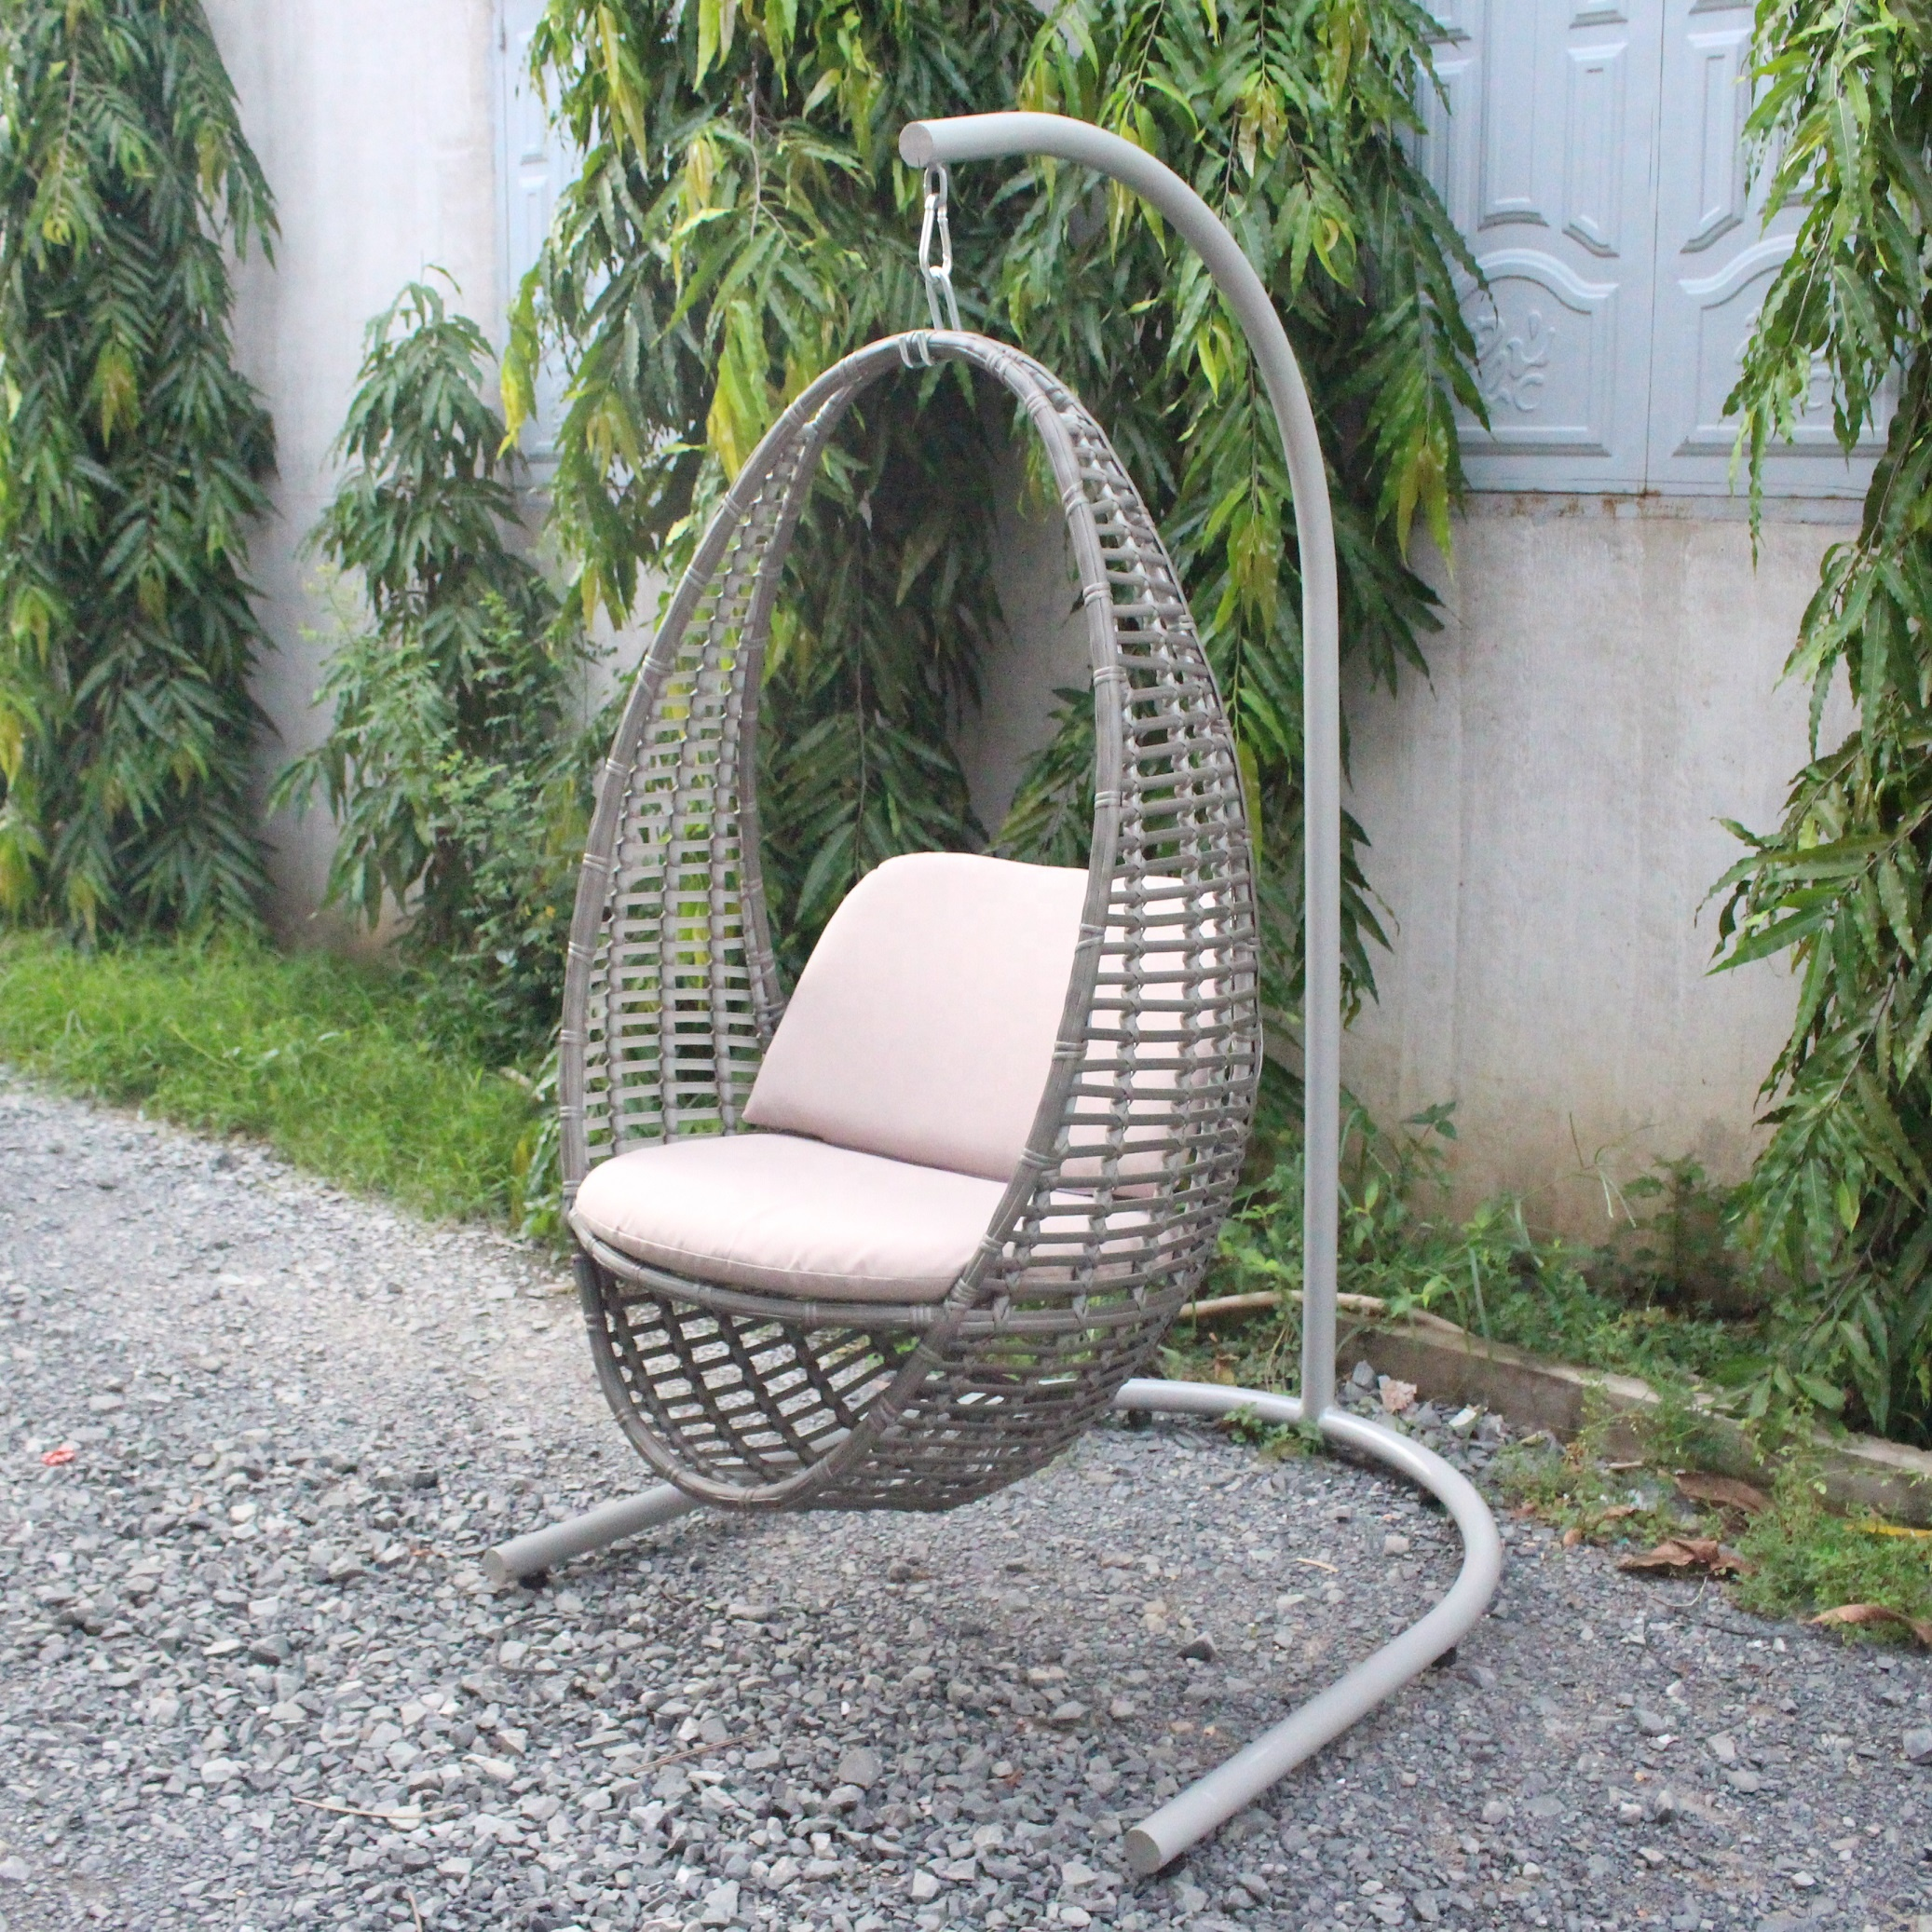 Wicker Pe Rattan Swing Egg Hanging Chair Uv Pe Outdoor Rattan Swing Egg Chair High Quality Steel Frame Buy Outdoor Swing Chair Wicker Hanging Swing Chair Patio Swing Egg Chair Product On Alibaba Com